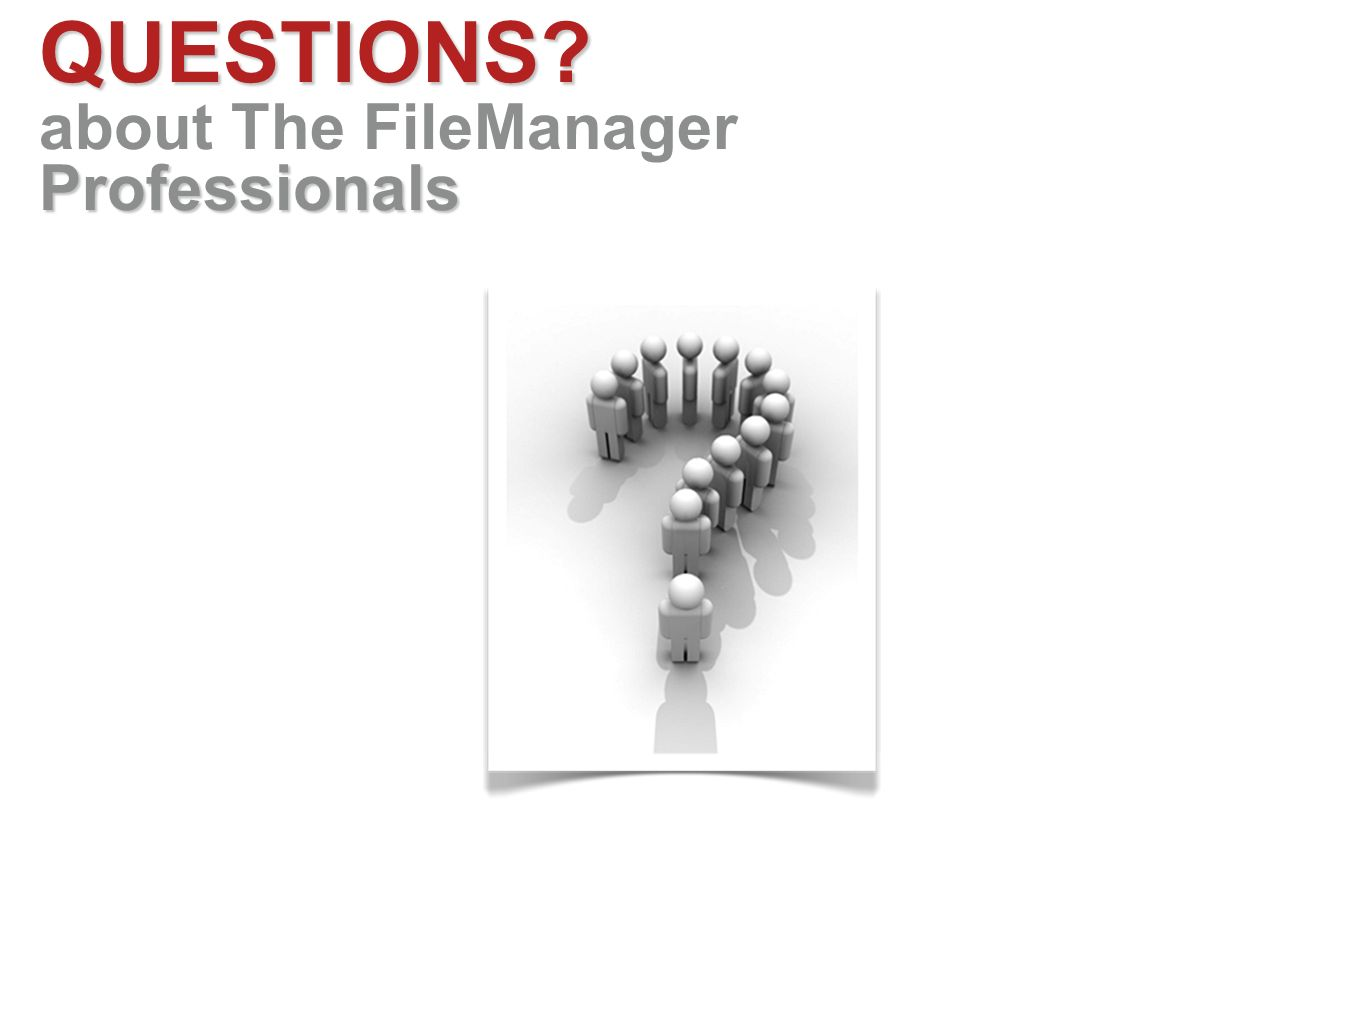 QUESTIONS Professionals about The FileManager Professionals